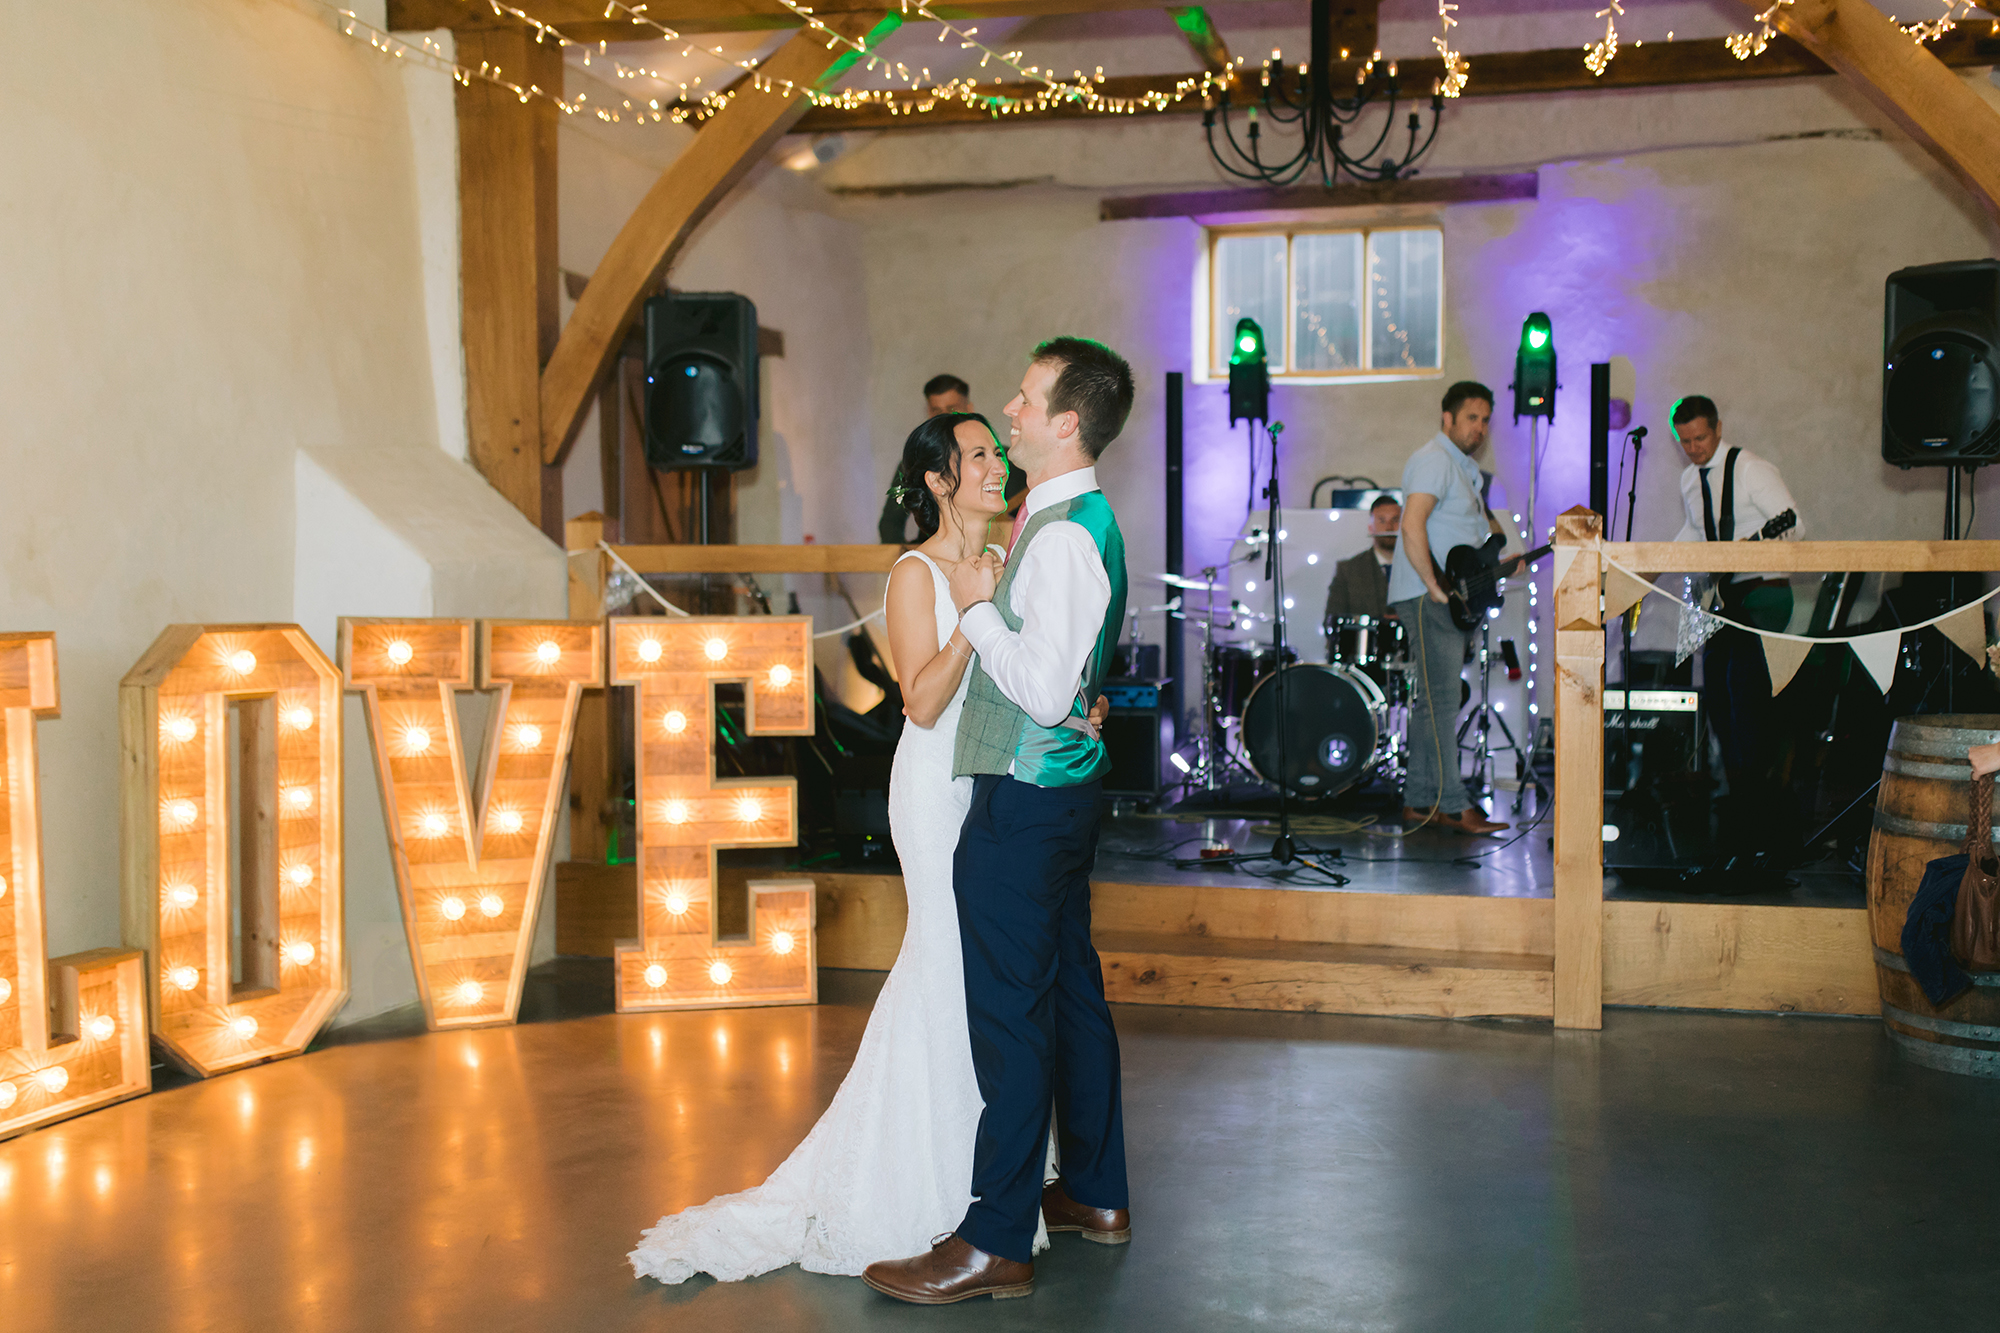 Bride and Groom perform their first dance in front of giant light up Love letters and a live bandand